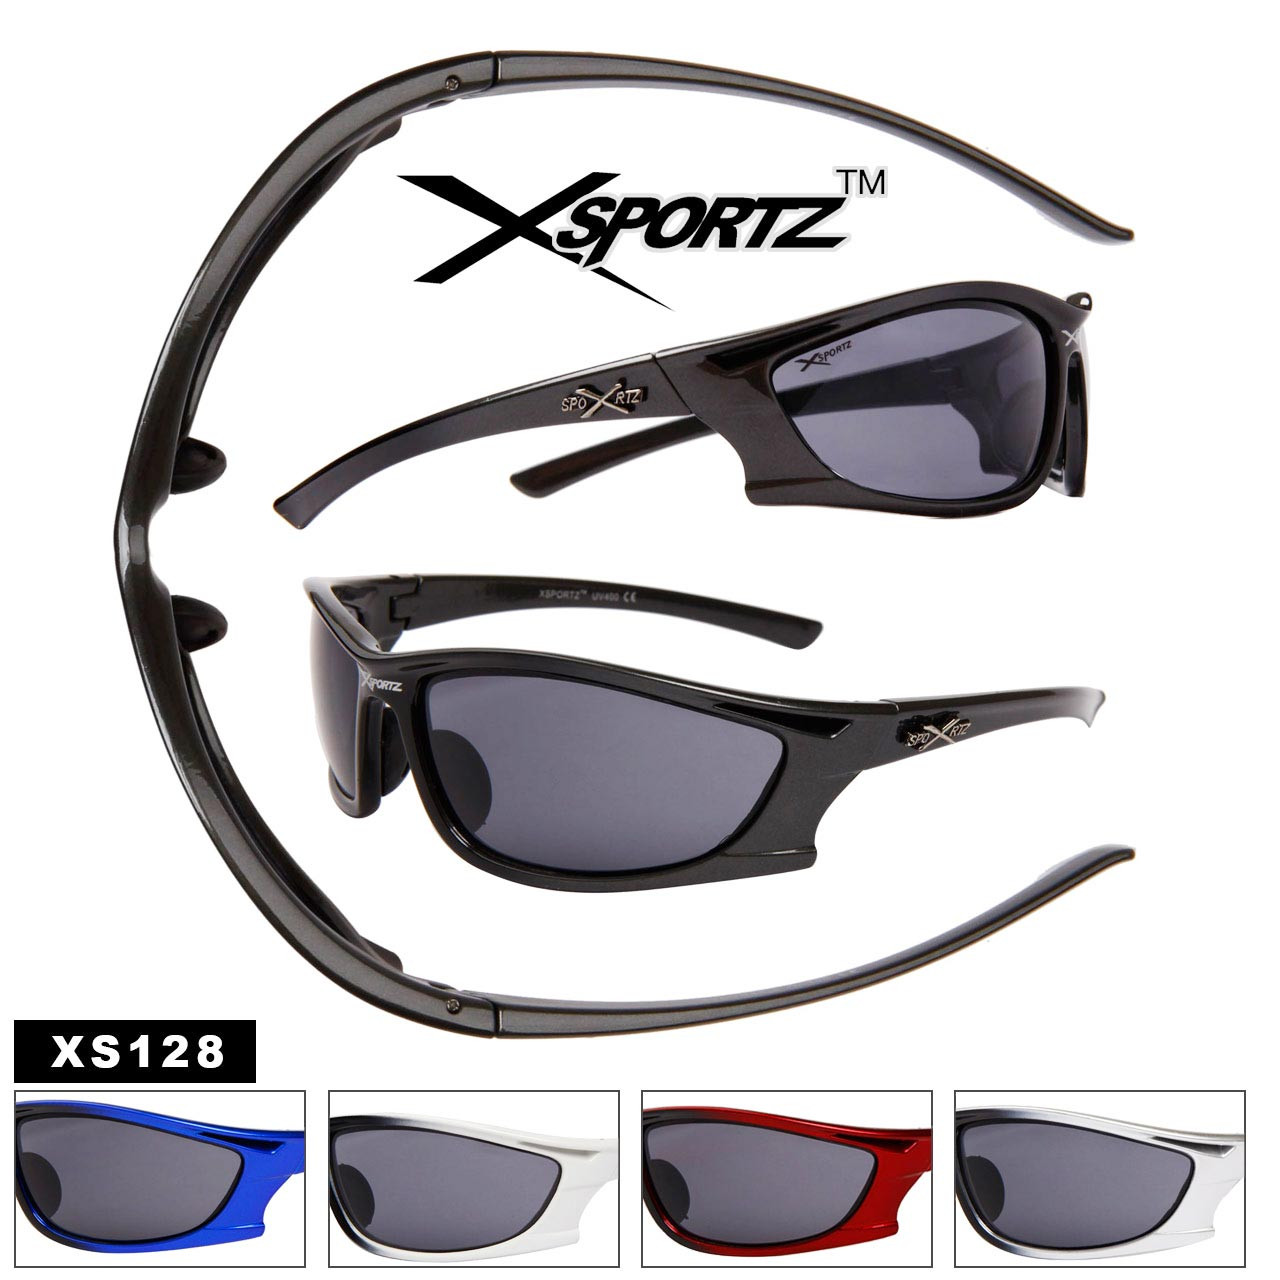 Xsportz™ Wholesale Sunglasses XS128